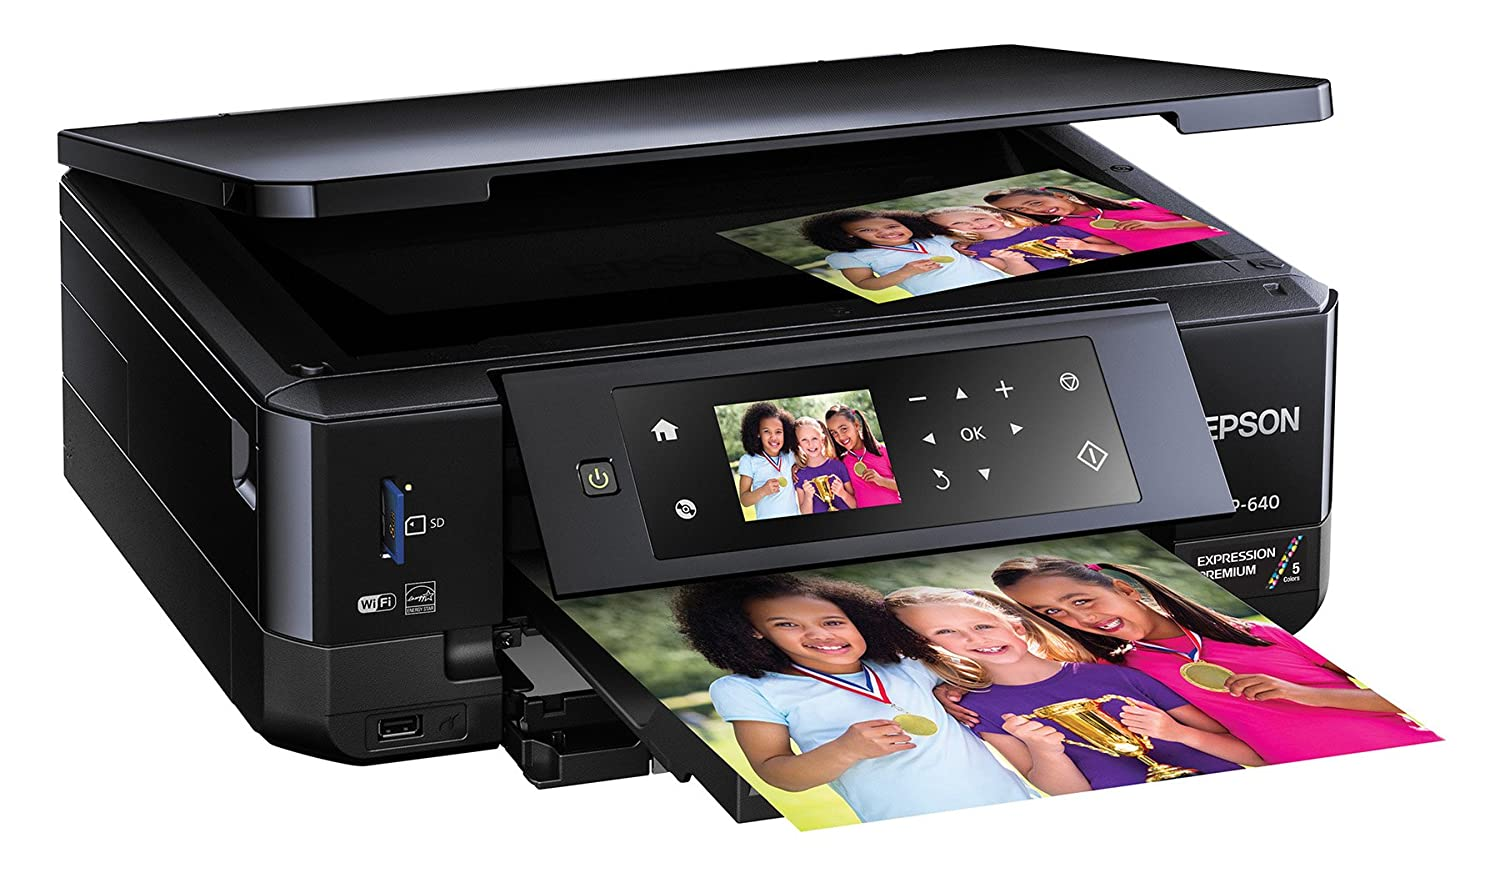 Best color printing quality - Epson Xp 640 Expression Premium Wireless Color Photo Printer